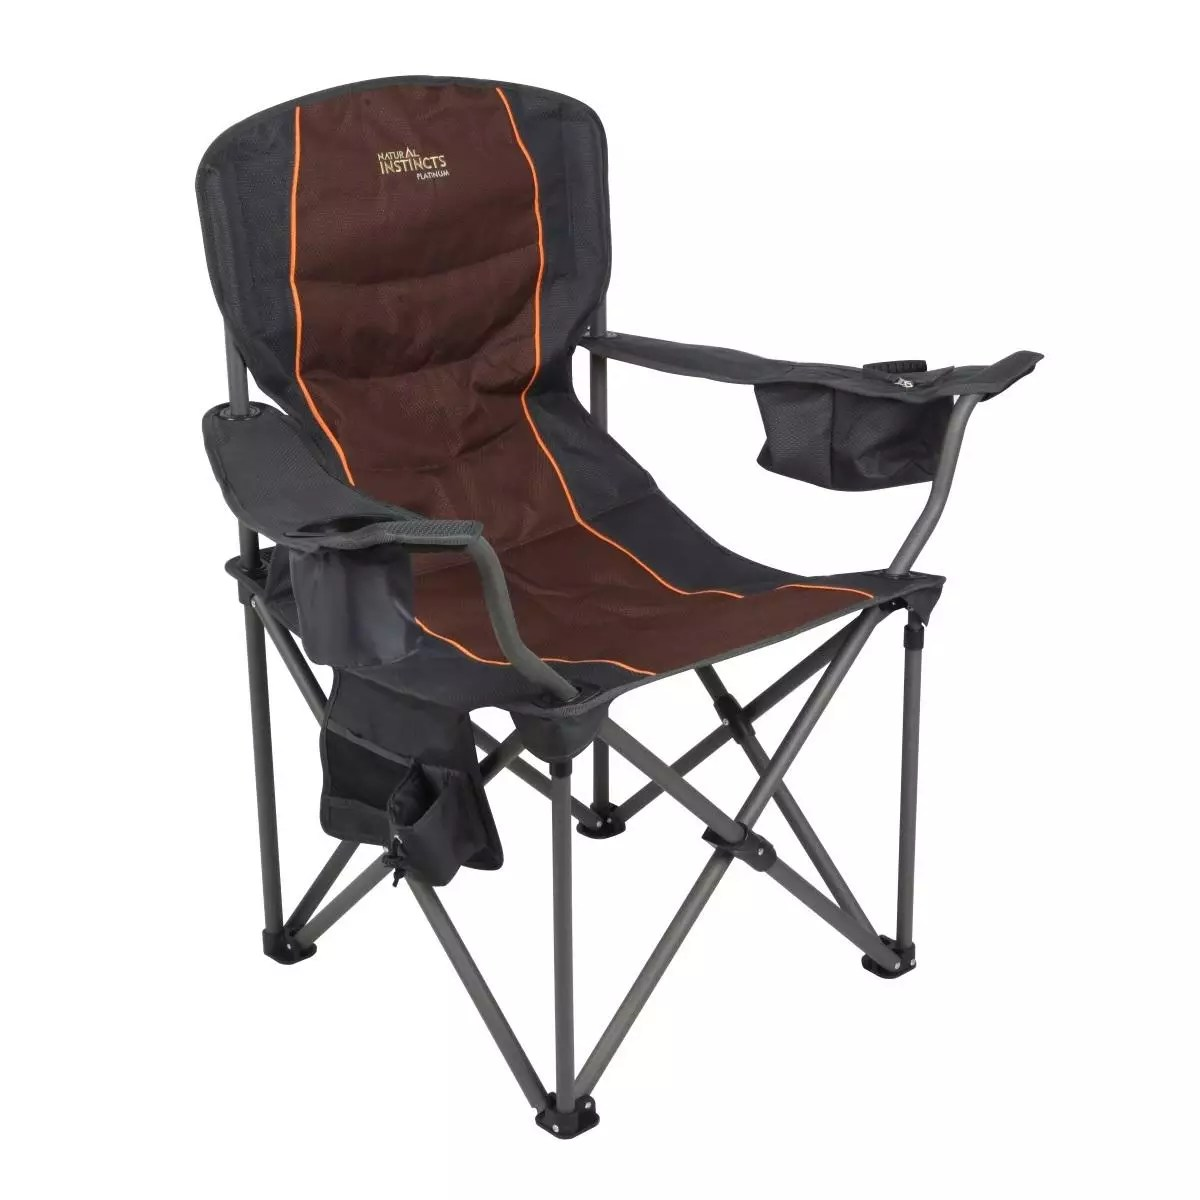 Deluxe Camping Chairs Natural Instincts Oversize Deluxe Heavy Duty Chair With Pocket